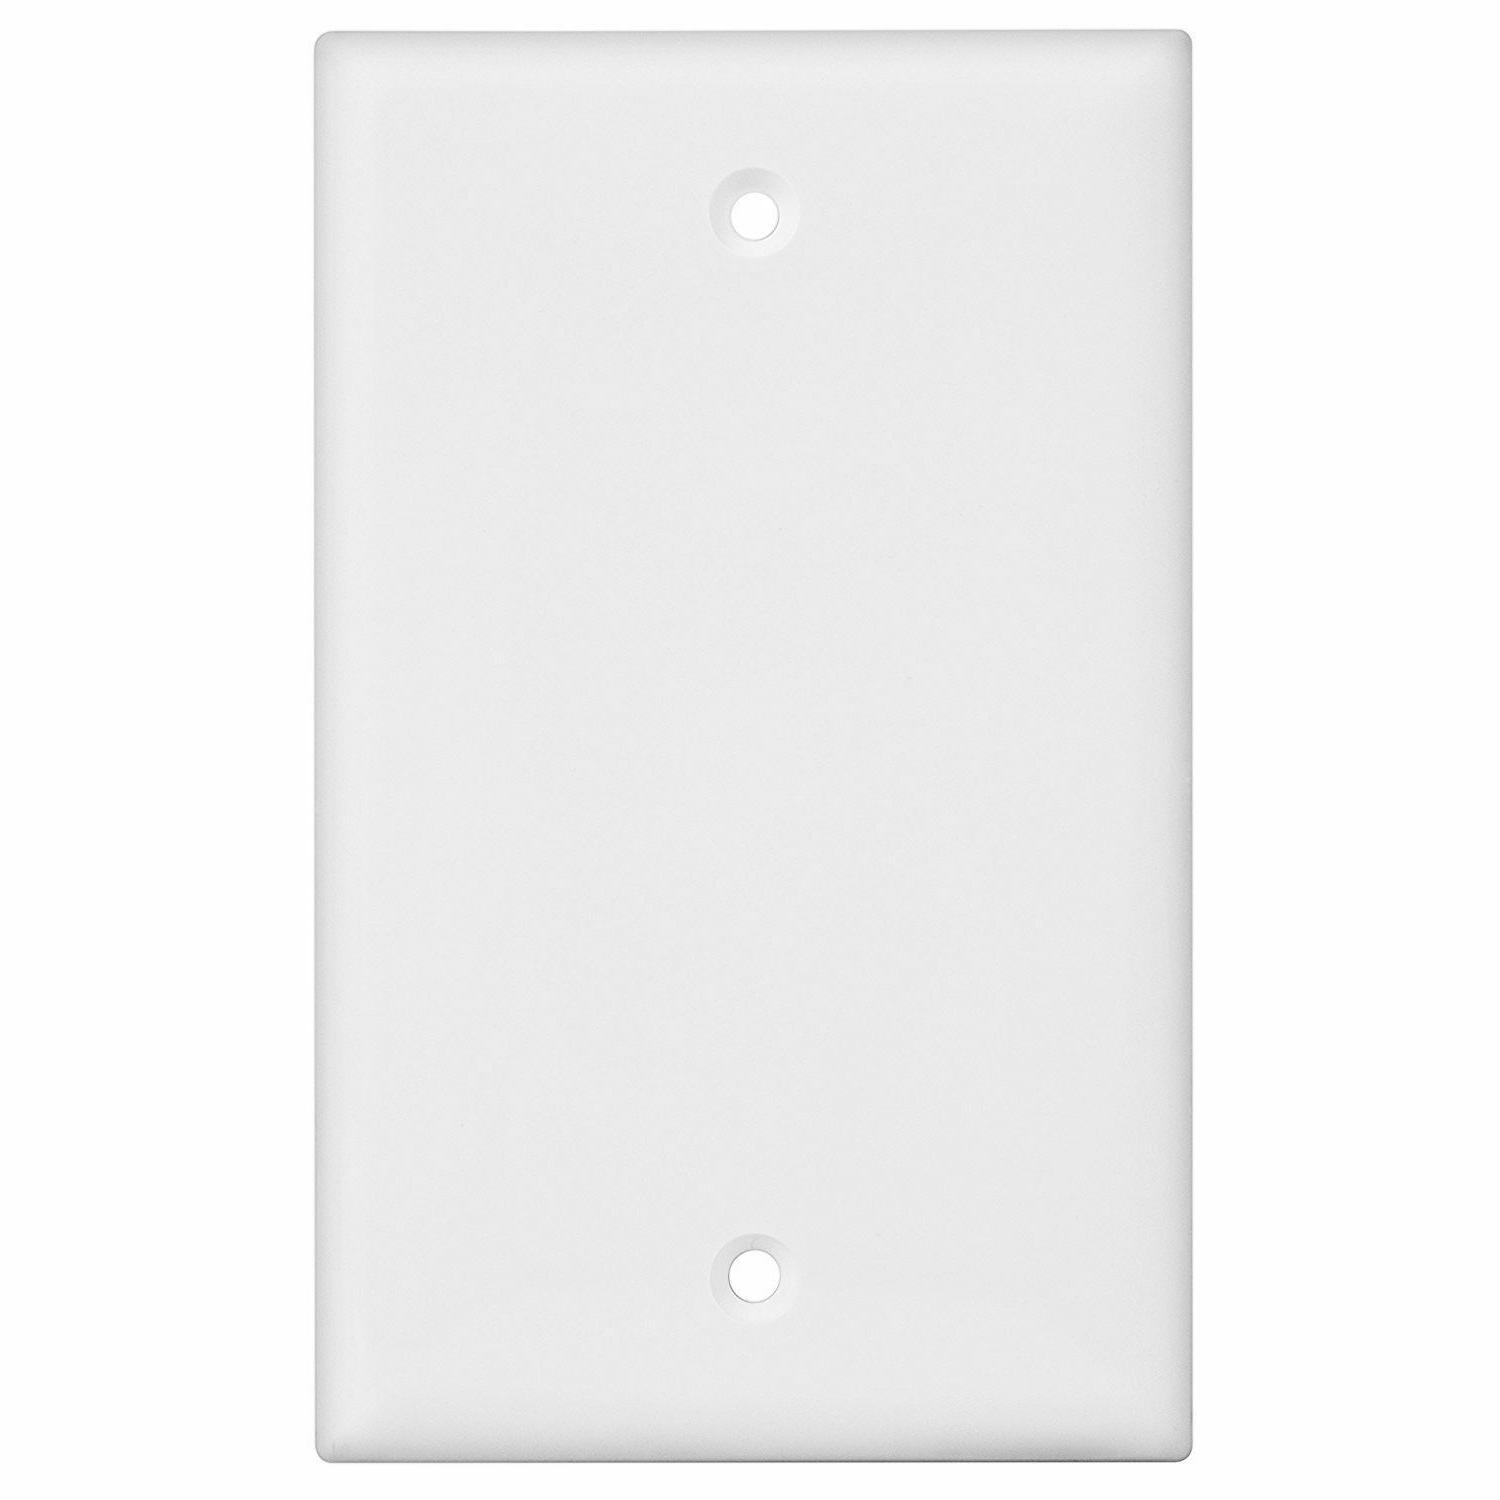 1-Gang Device Cover Wall Plate, White, Pack